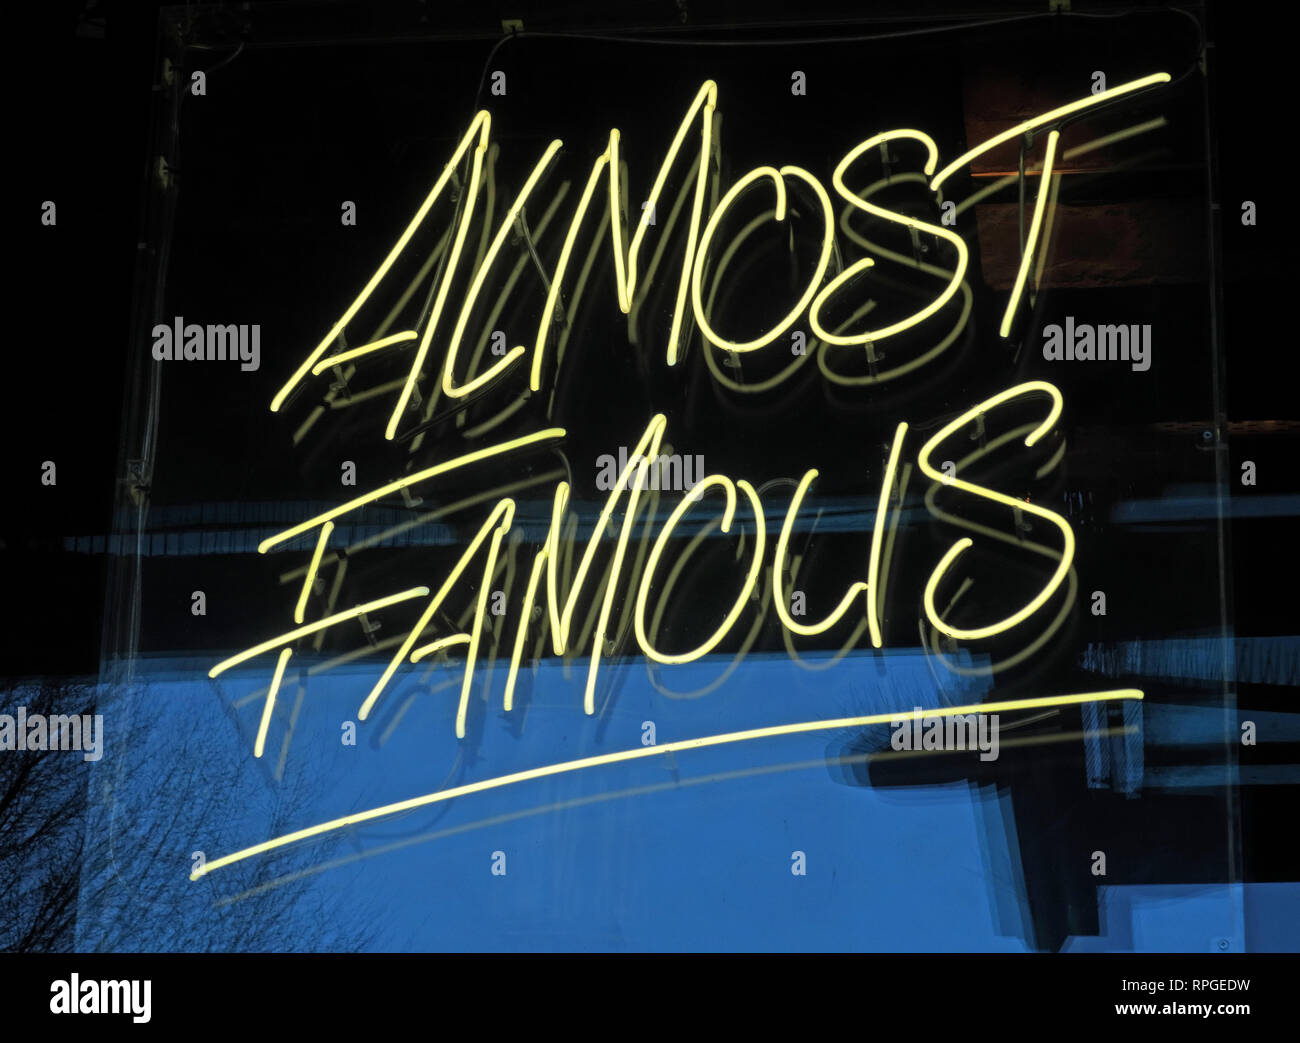 Almost Famous burger chain,restaurant,Great Northern,Manchester, North West England, UK Stock Photo